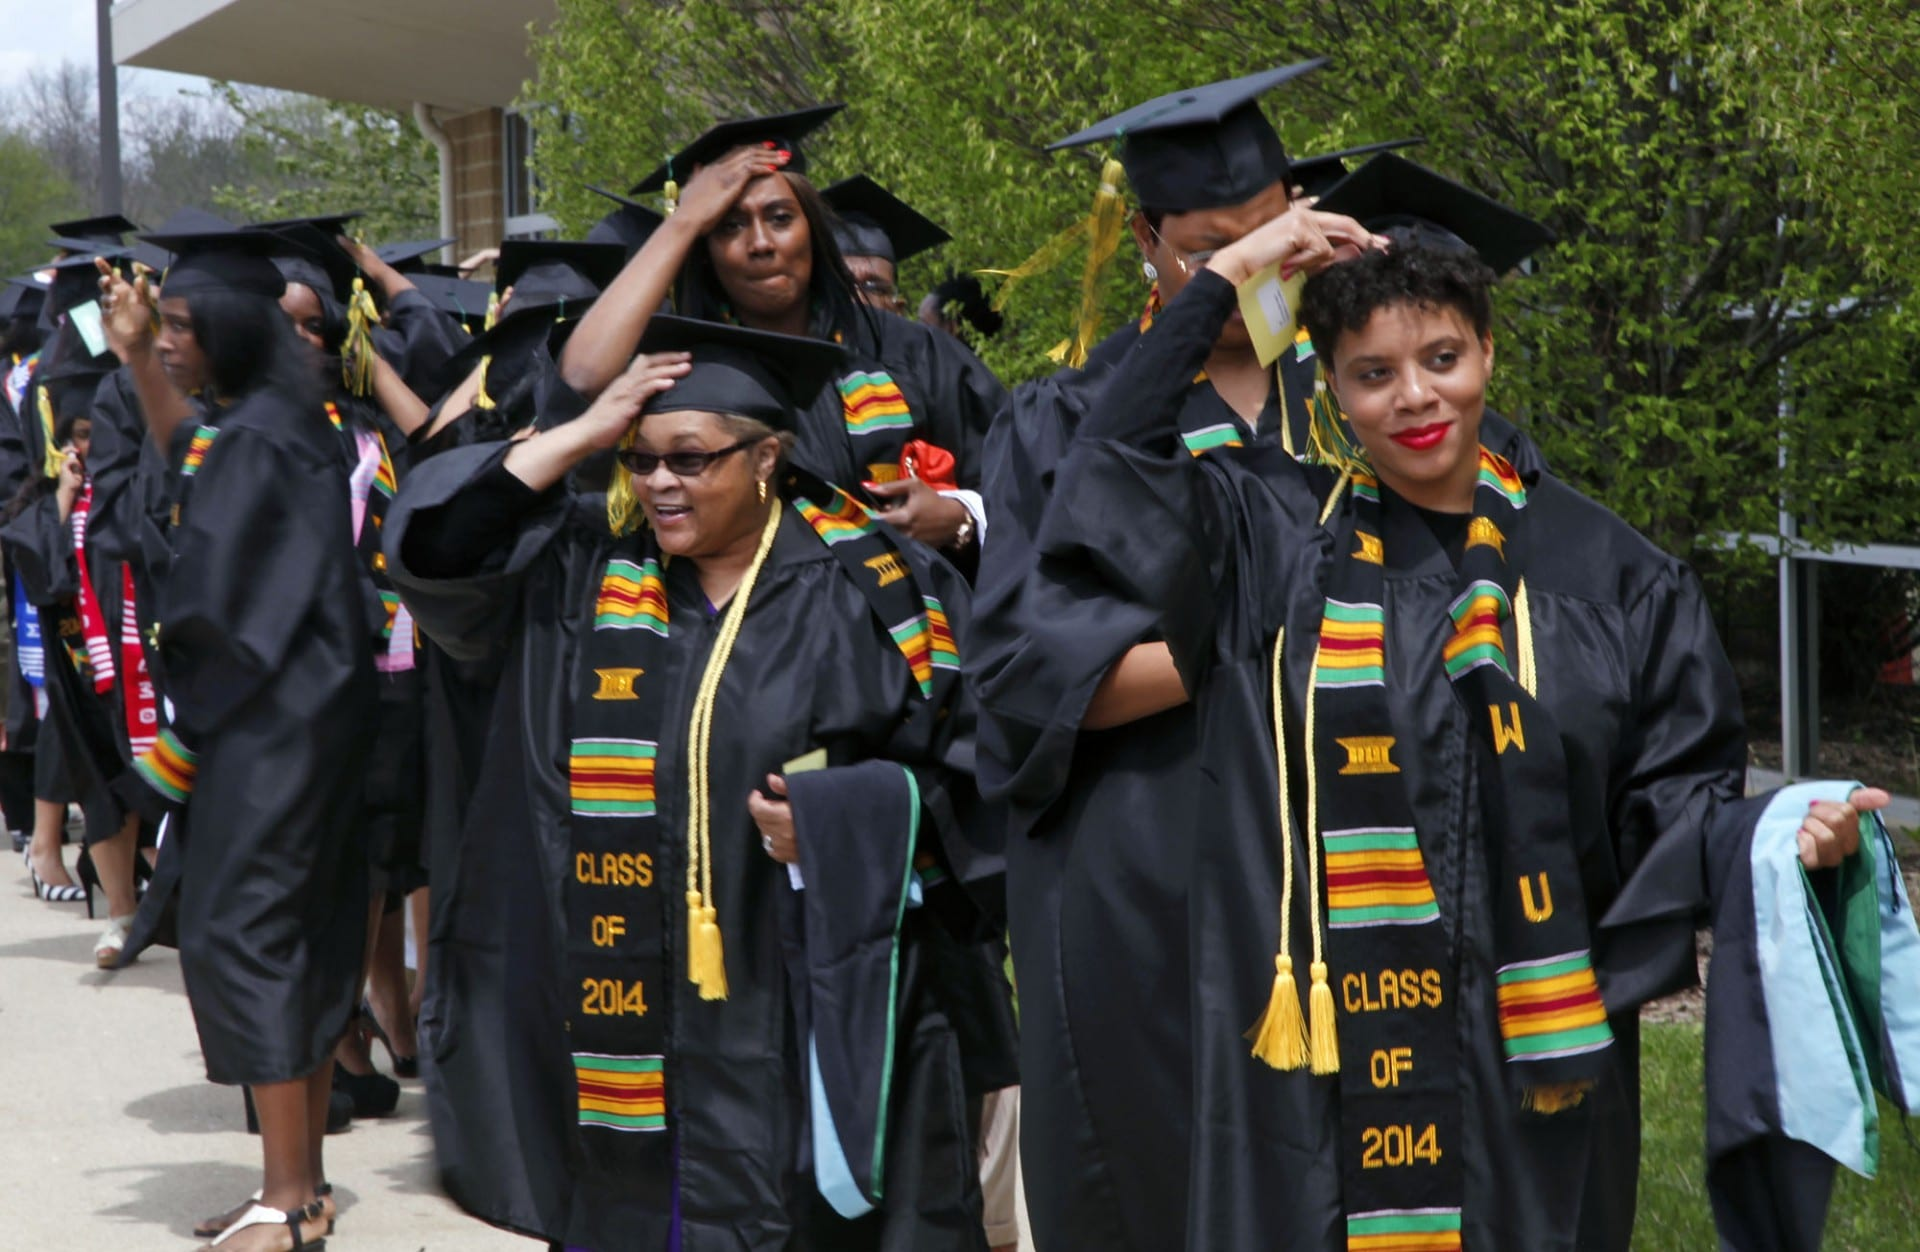 Group shot of Wilberforce University students wearing caps and gowns lined up for a graduation ceremony